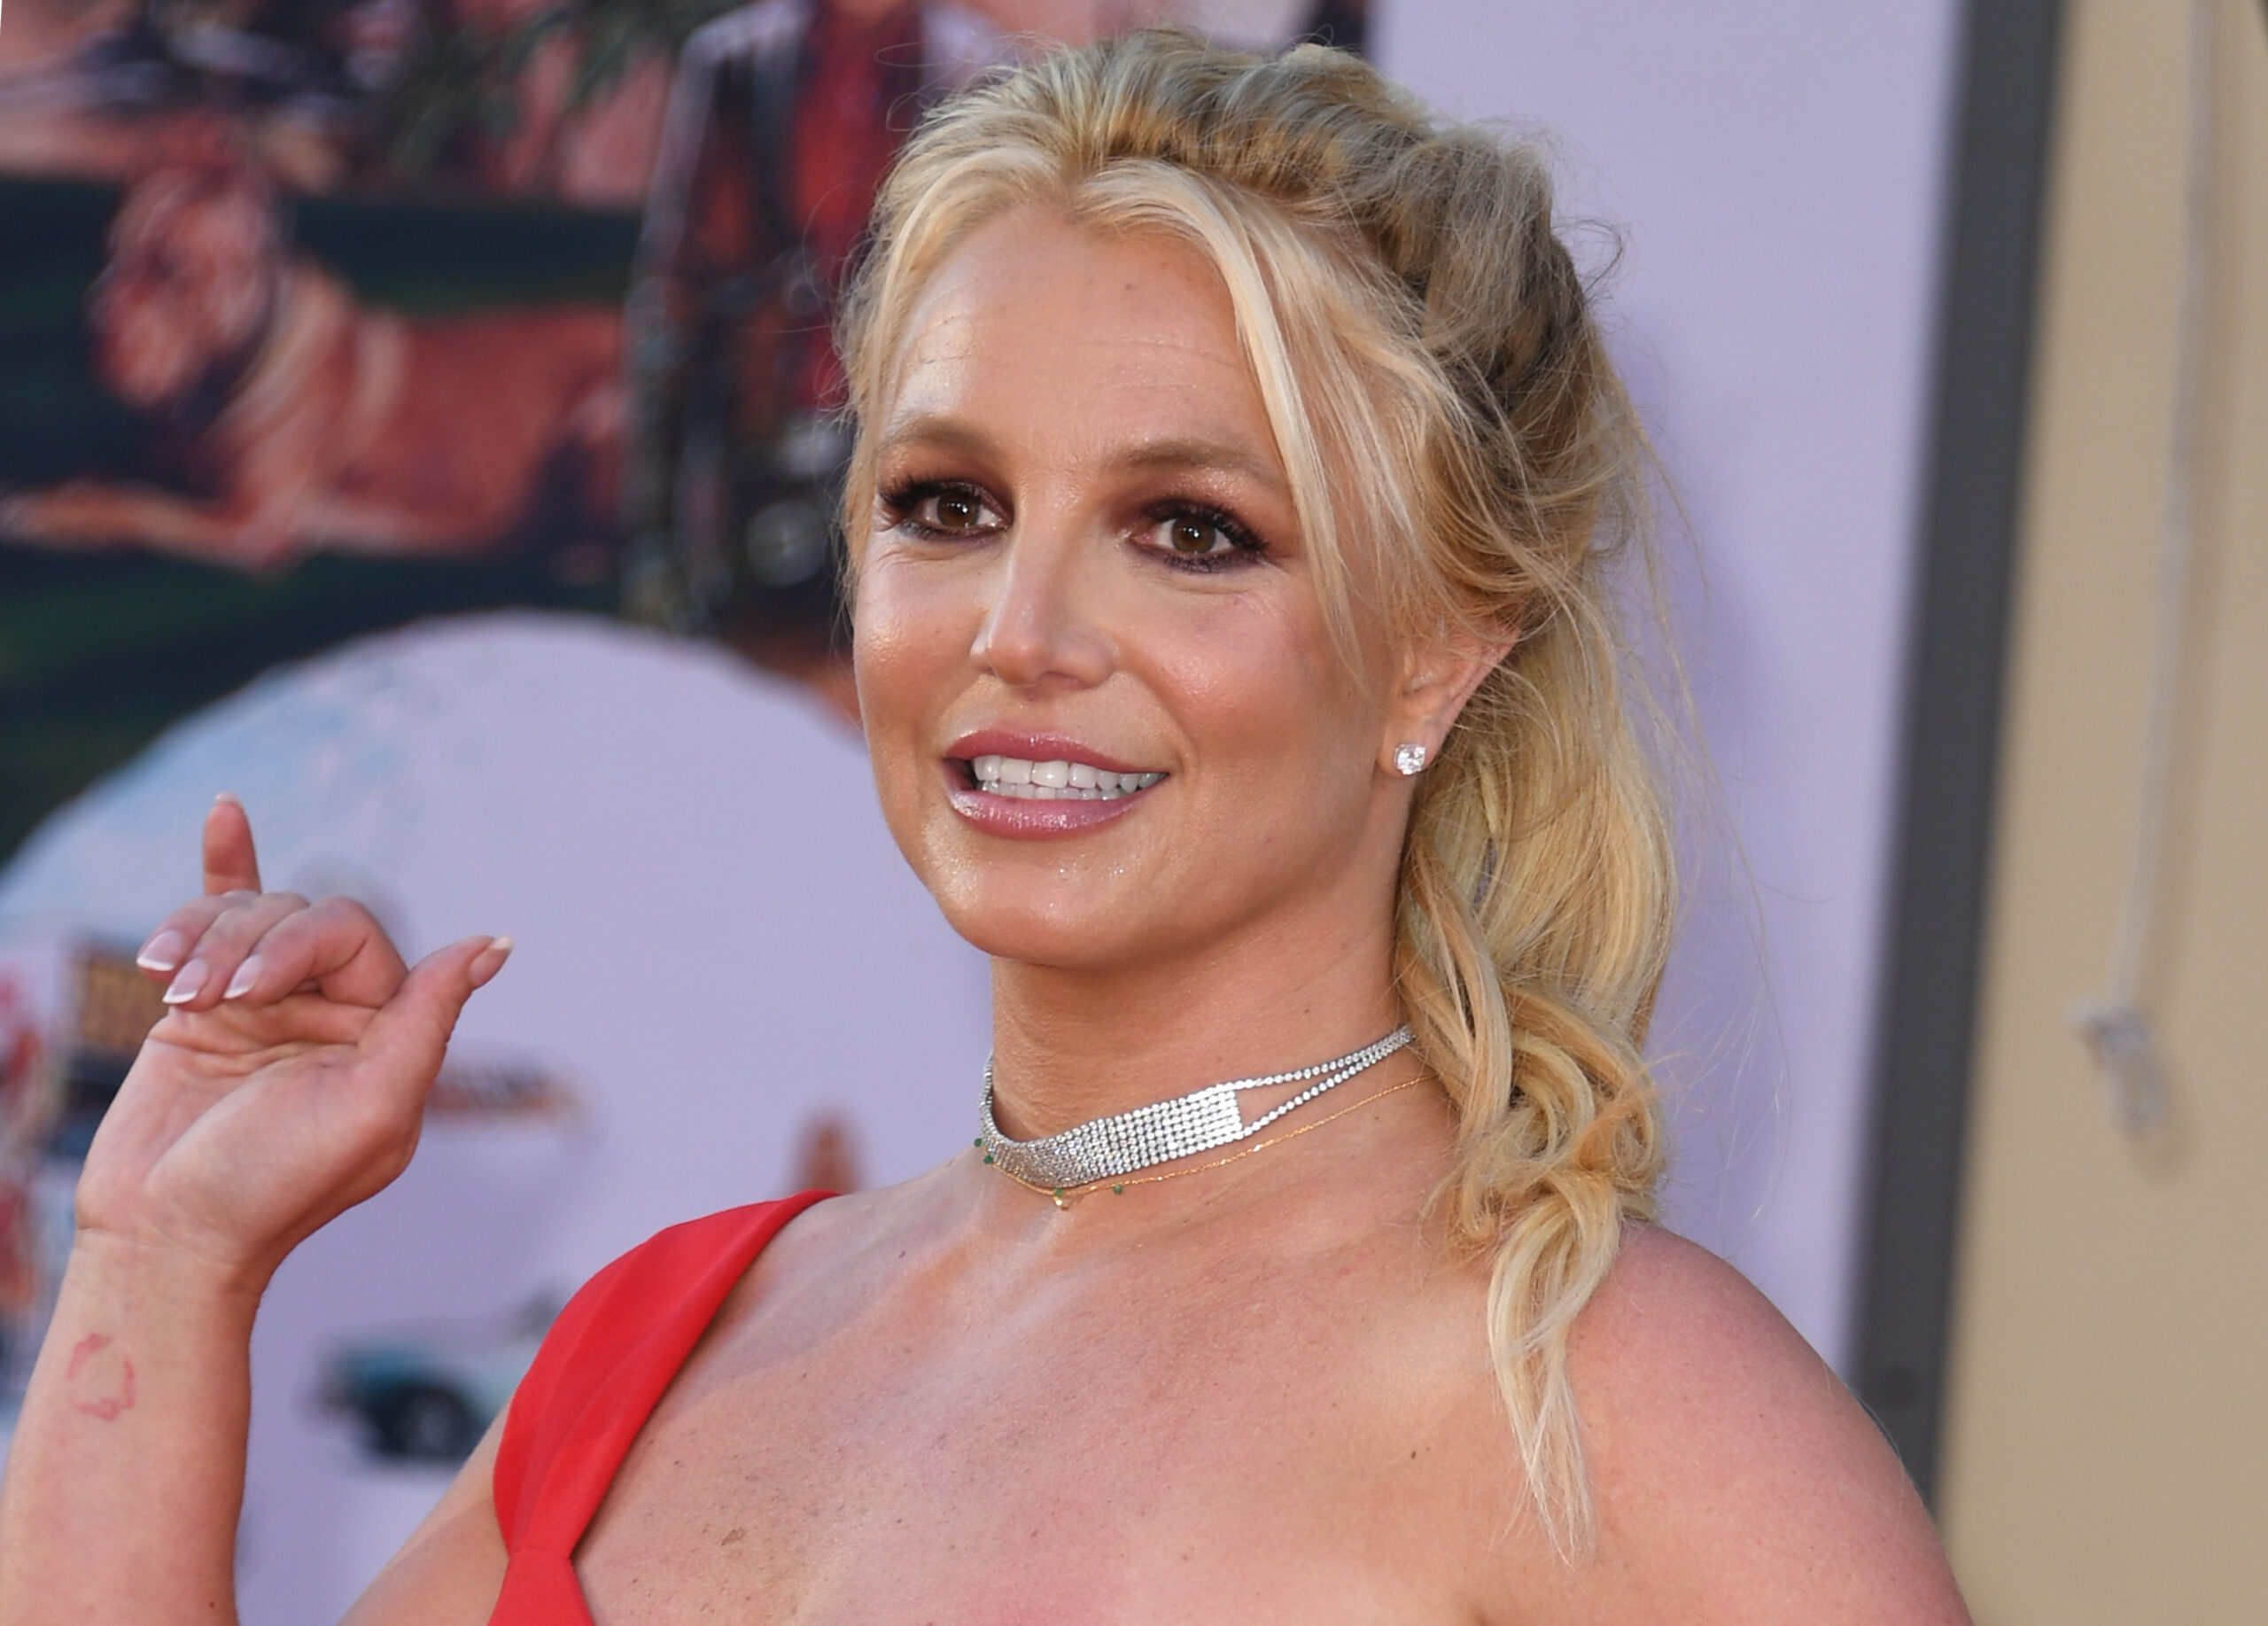 Is Speculating about Britney Spears's Mental Health Really Helping Her?